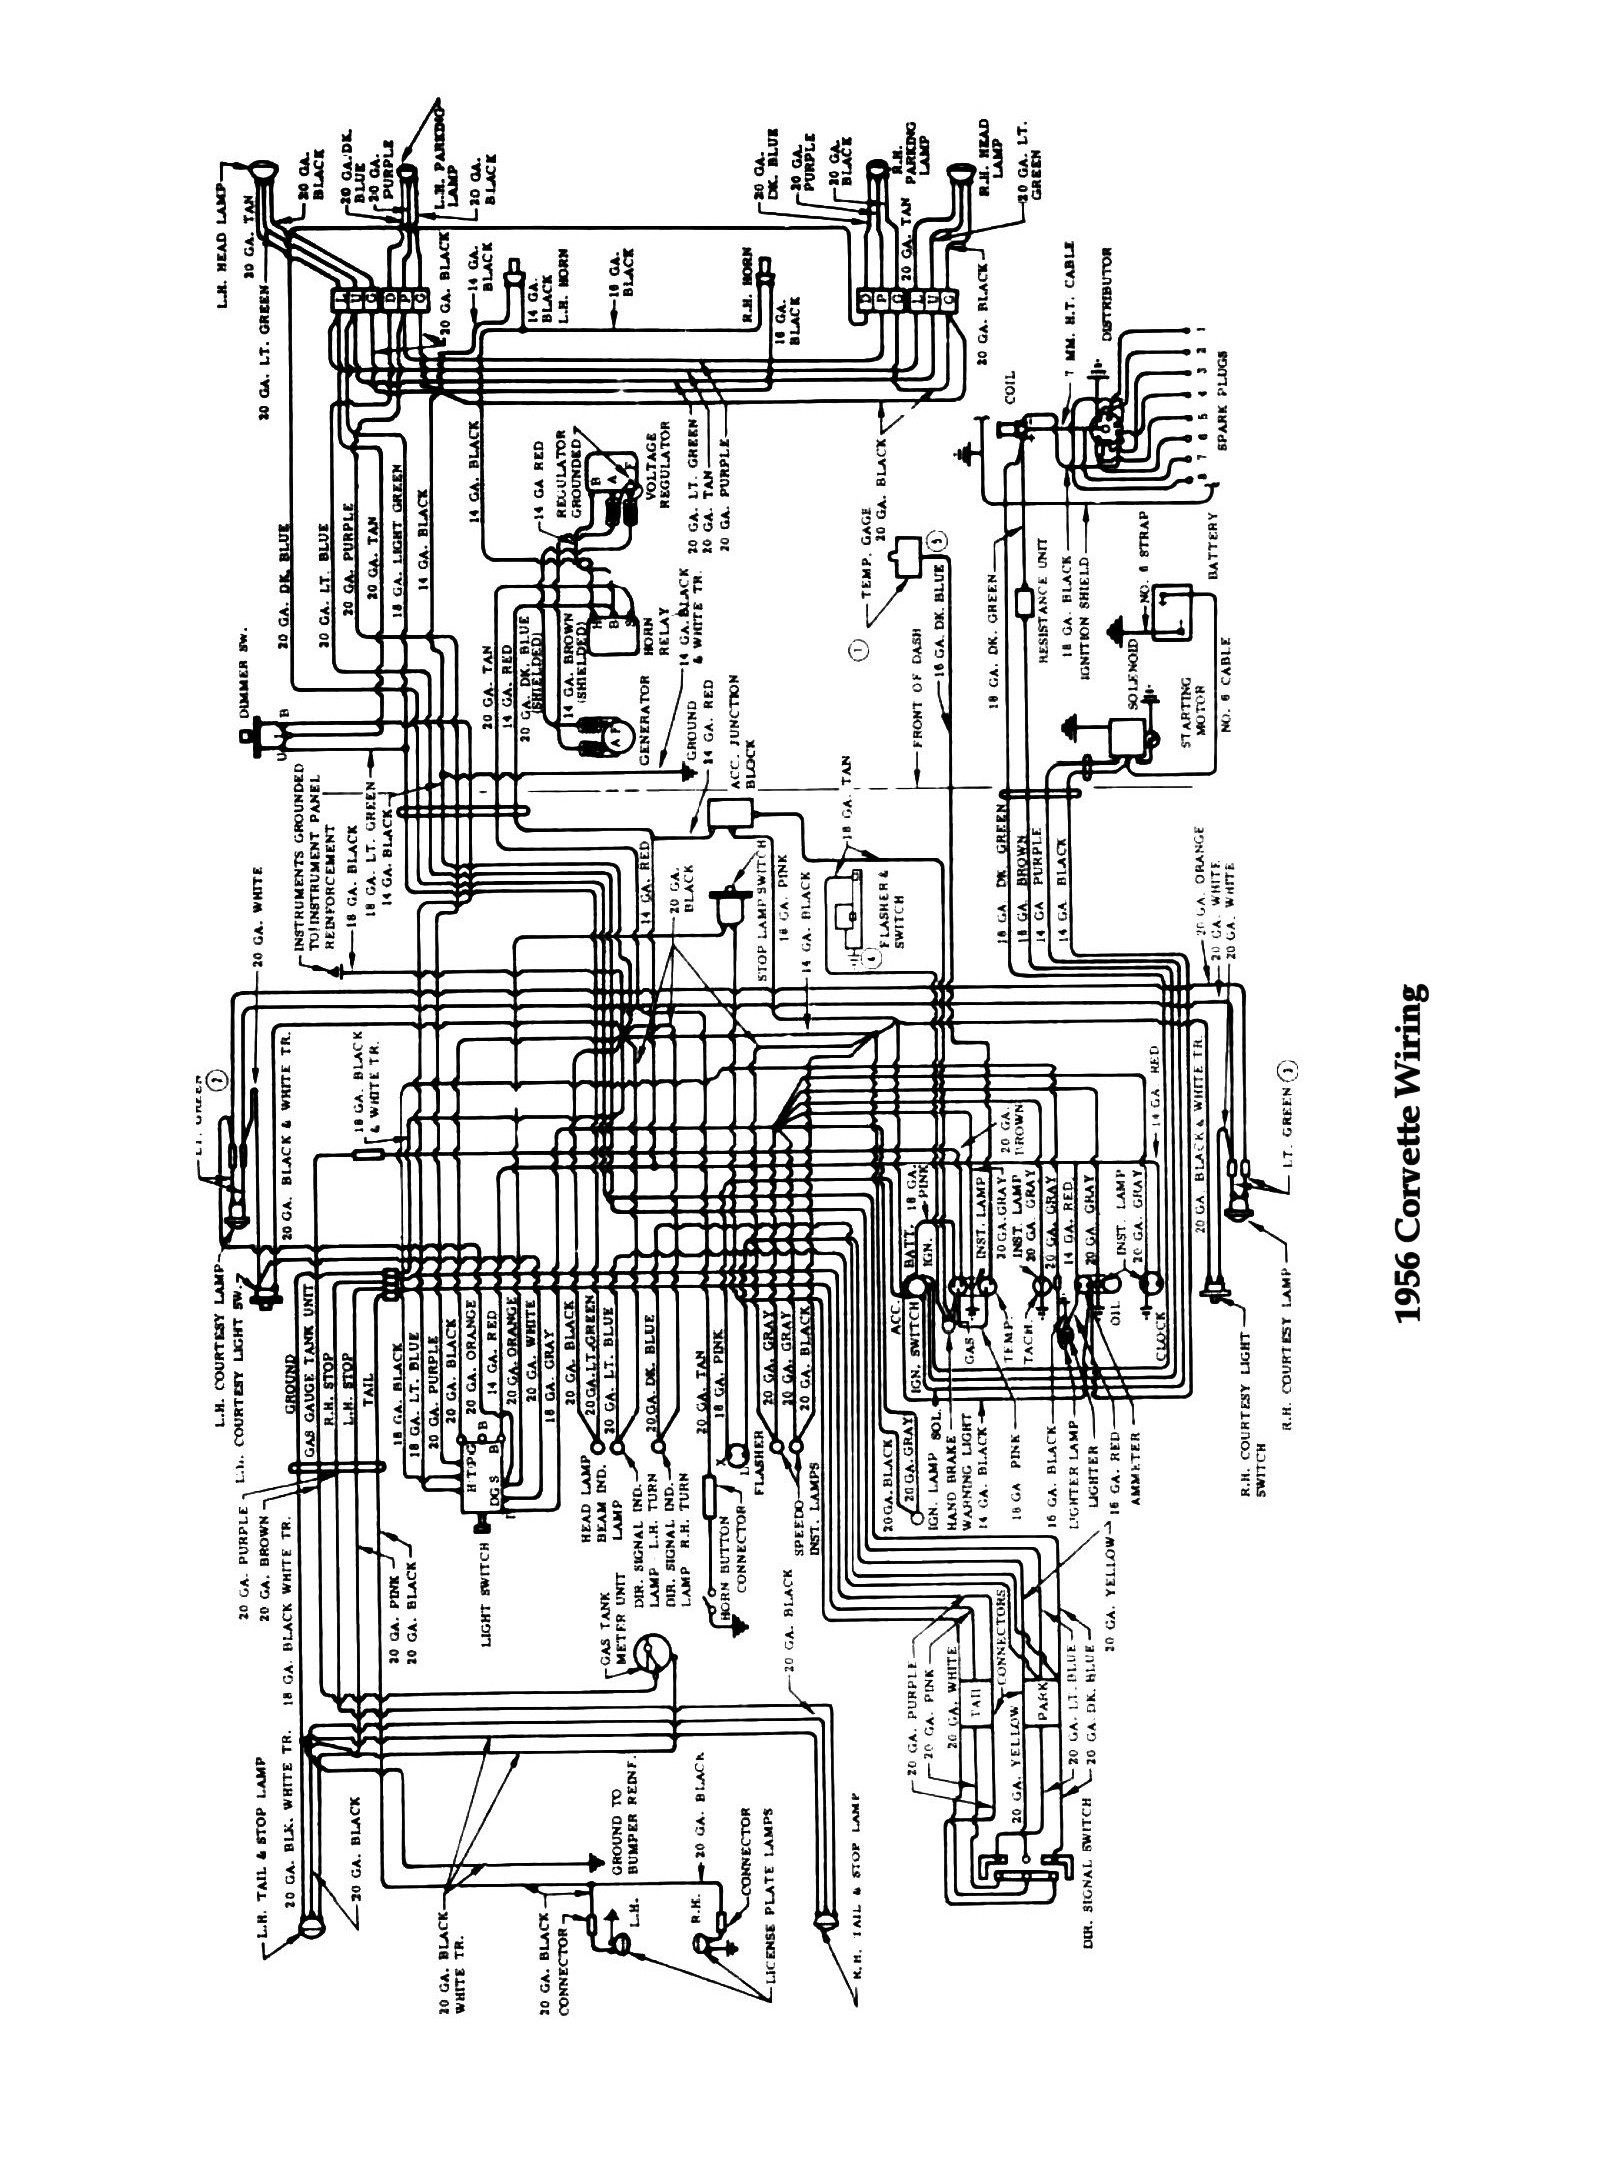 56corvette 1981 corvette wiring diagram corvette alternator wiring diagram 2000 C5 Corvette Wiring Diagram at gsmx.co